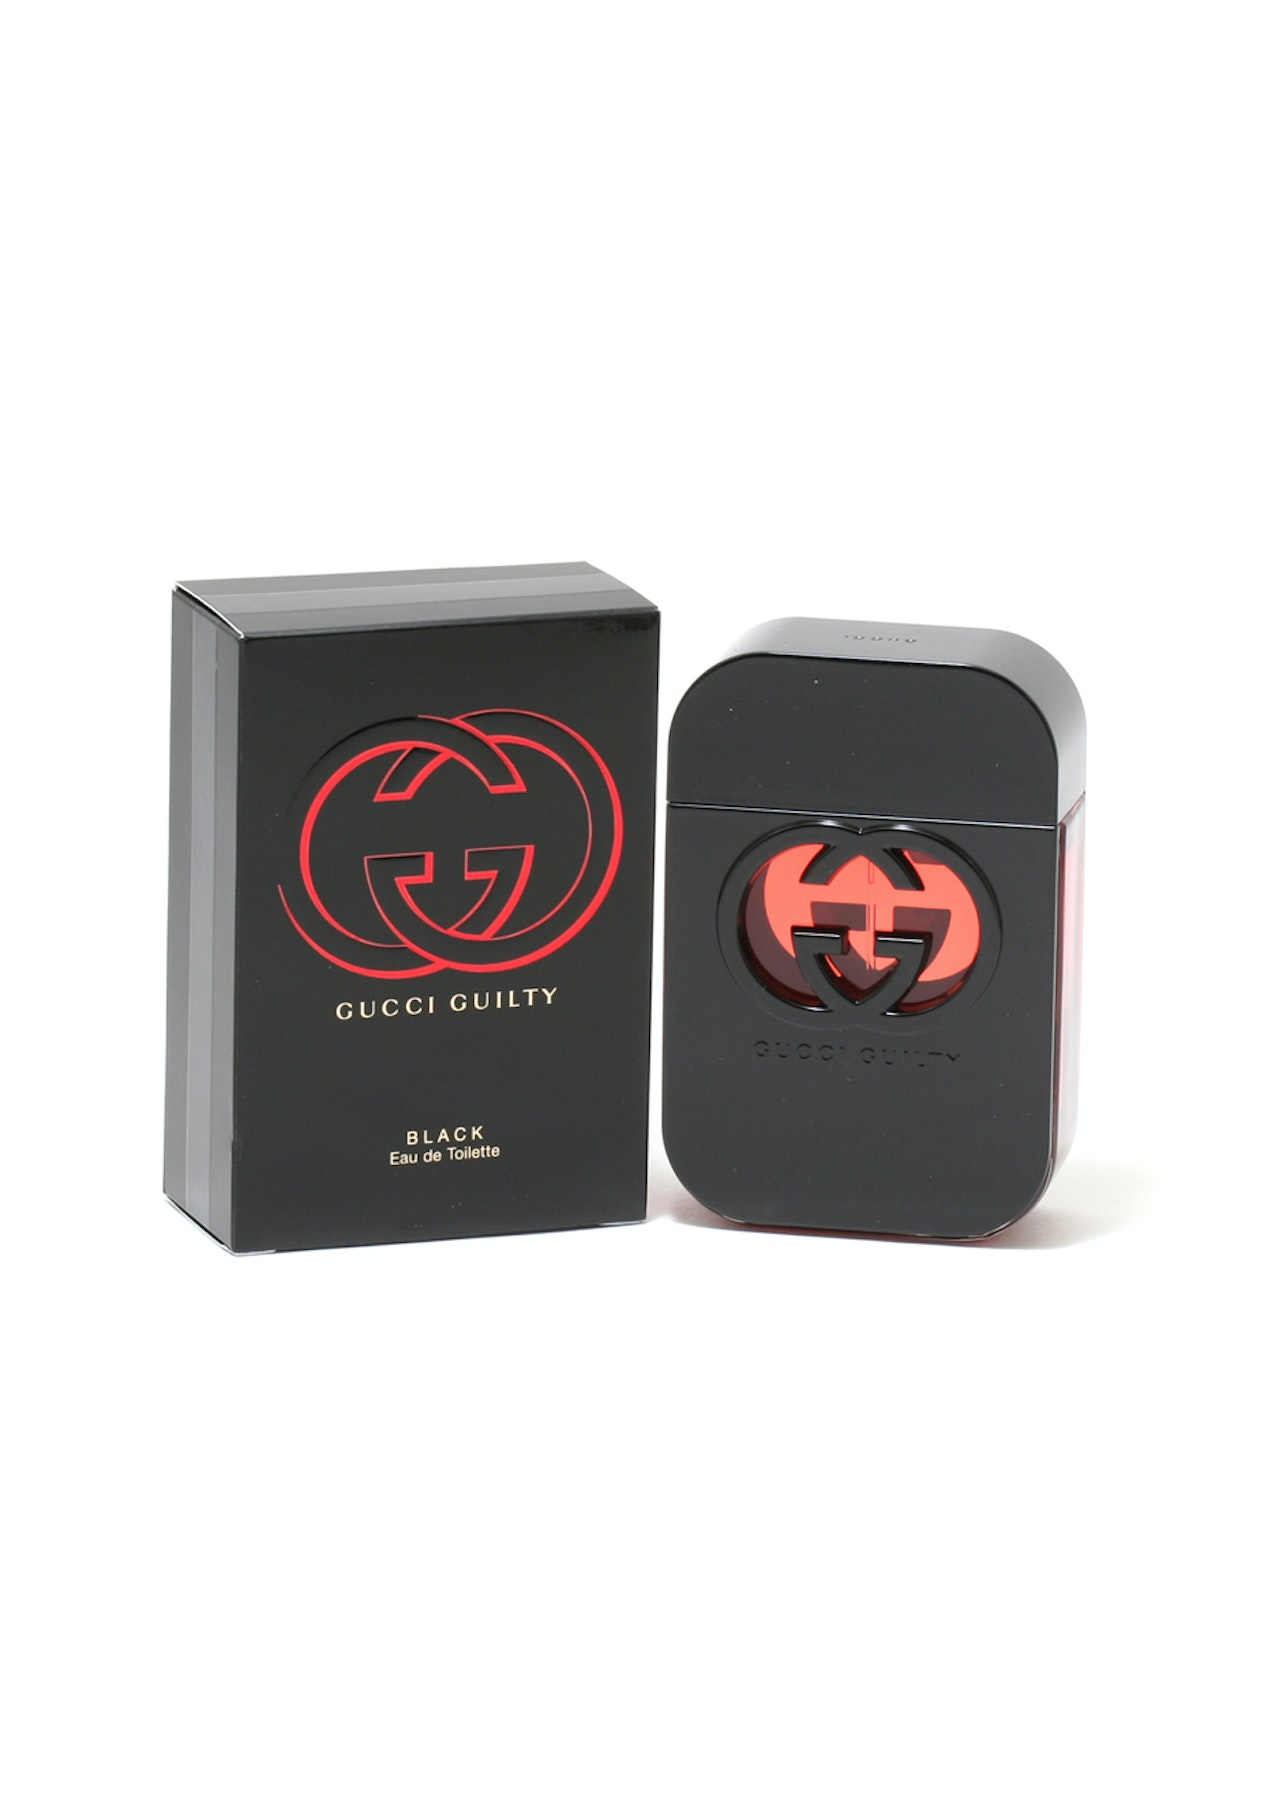 b9f6ebff203 Gucci Guilty Black Ladies Edt Spray - 75Ml - Luxury Scents For Less From  $19.95 - Onceit